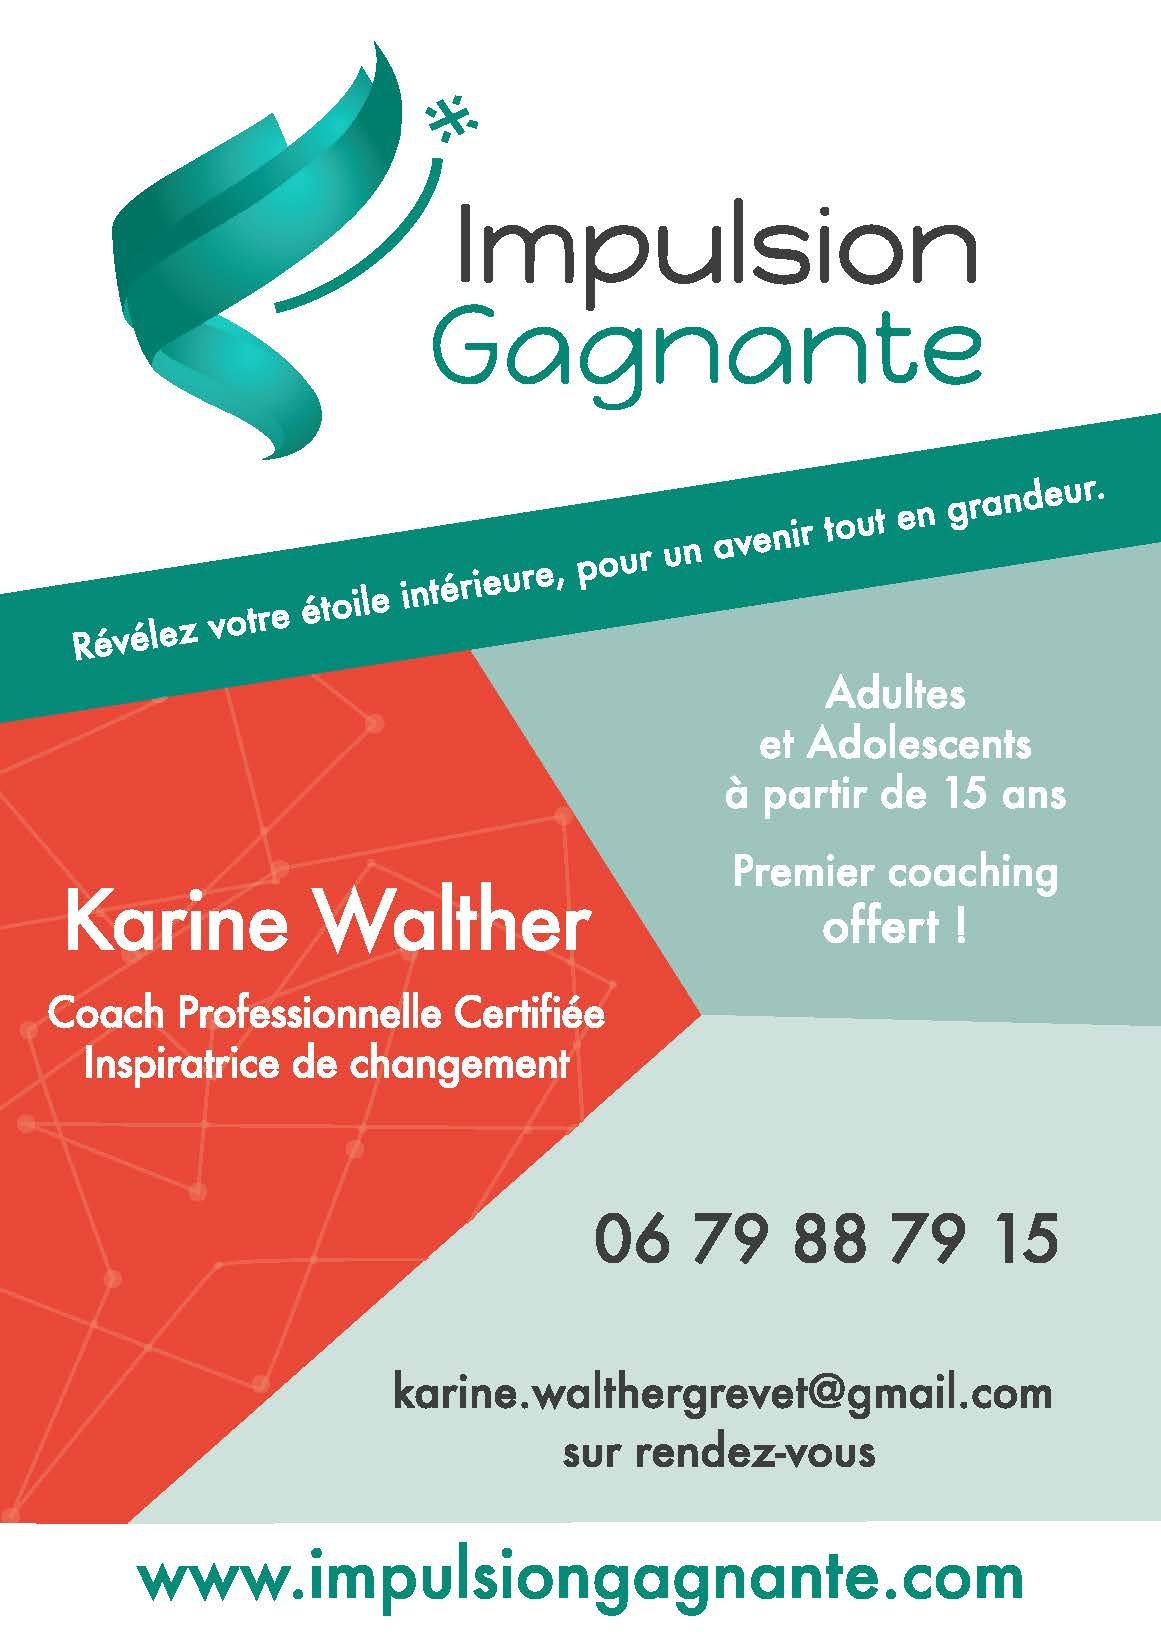 KARINE WALTHER - Impulsion Gagnante